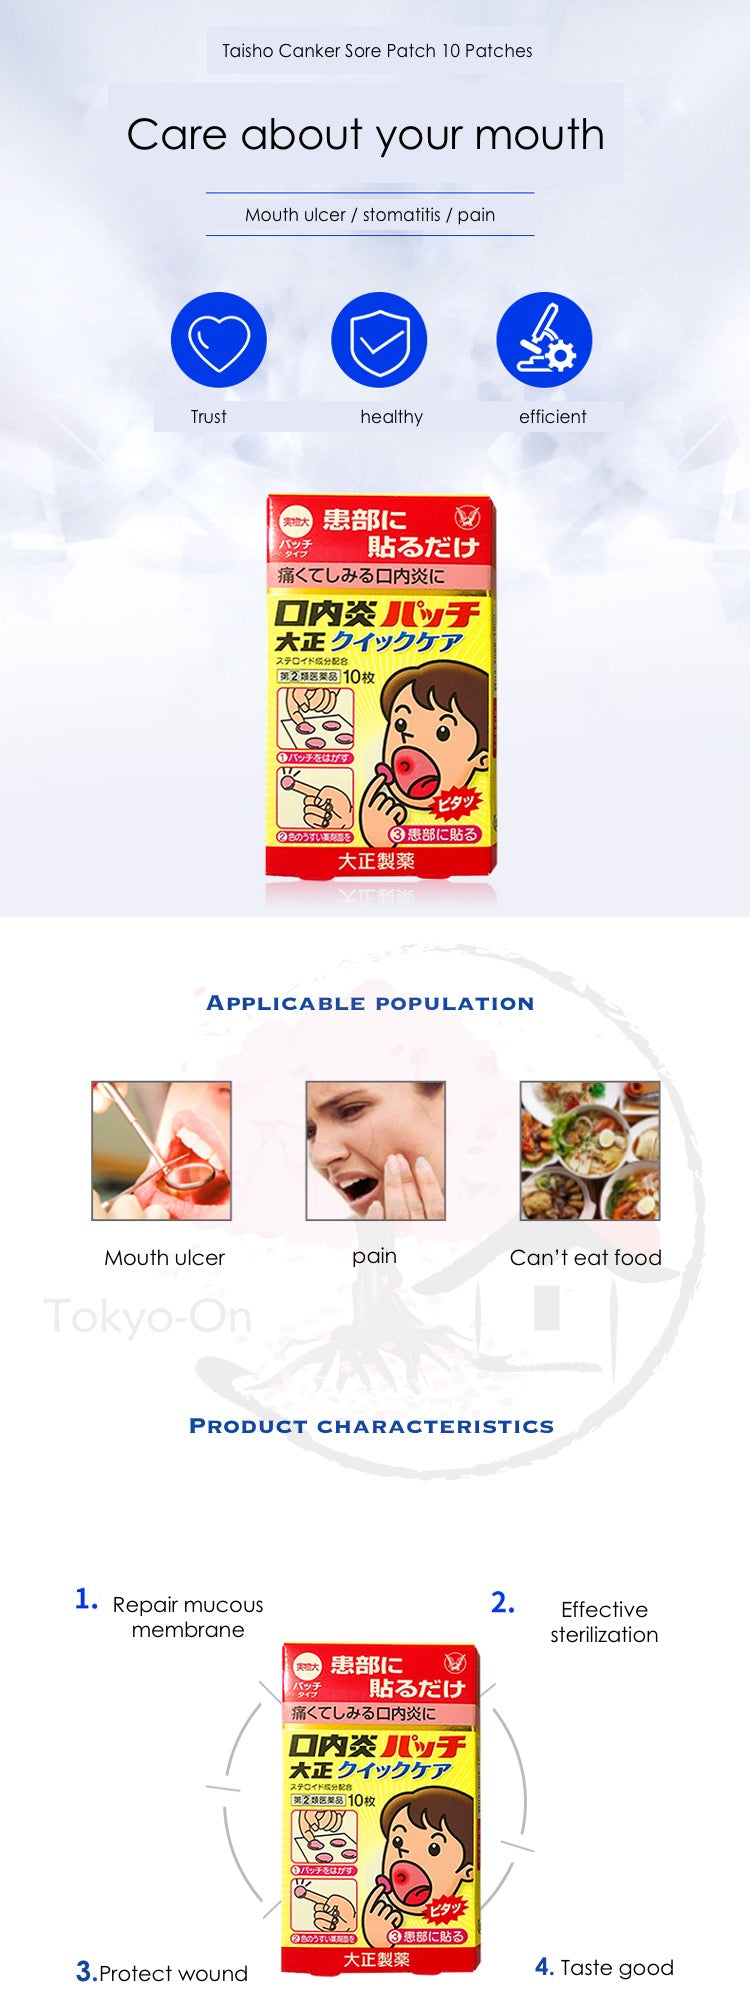 Tokyo-On Taisho Canker Sore Patch 10 Patches